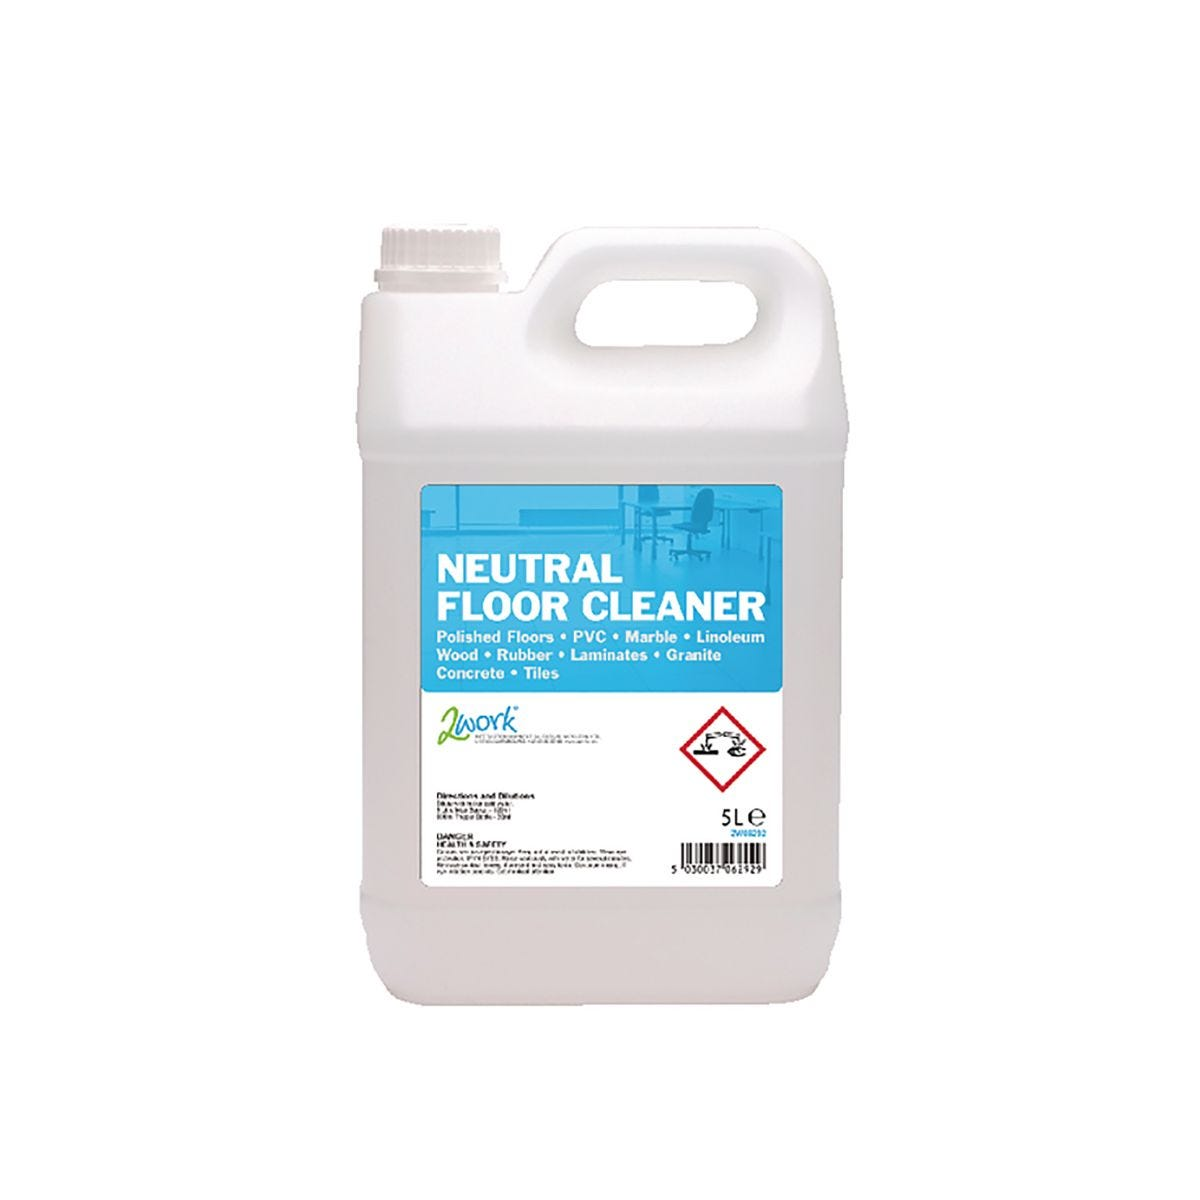 Image of 2Work Neutral Floor Cleaner 5 Litre